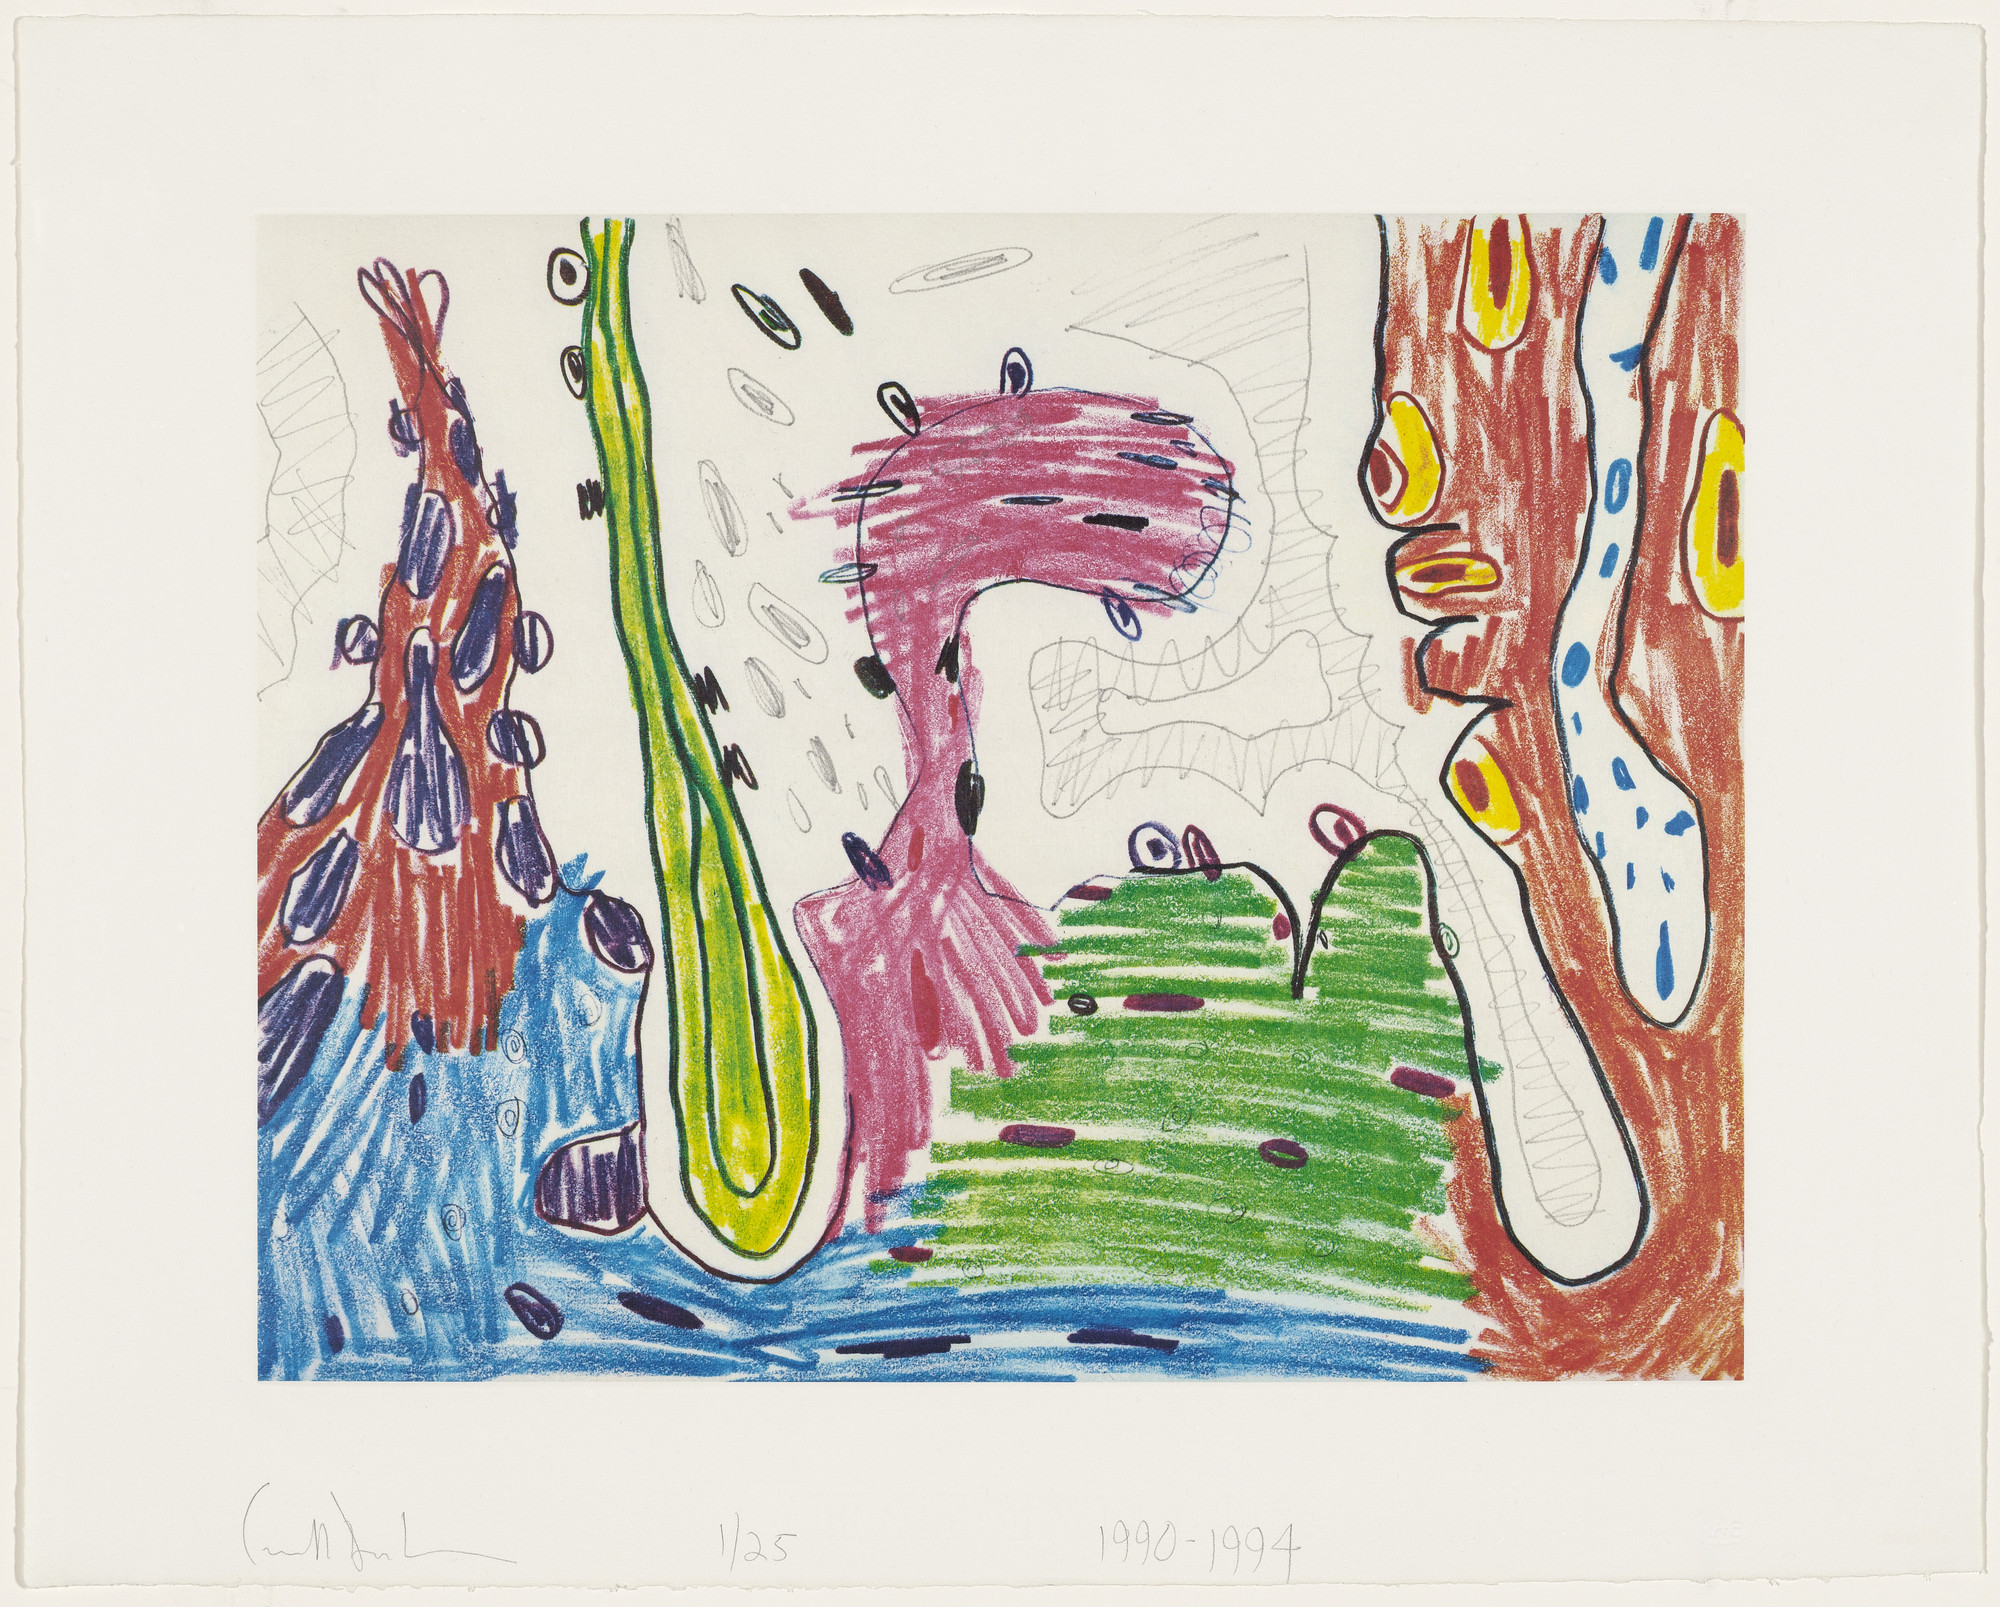 Carroll Dunham. Epsilon from Seven Places. 1990-94